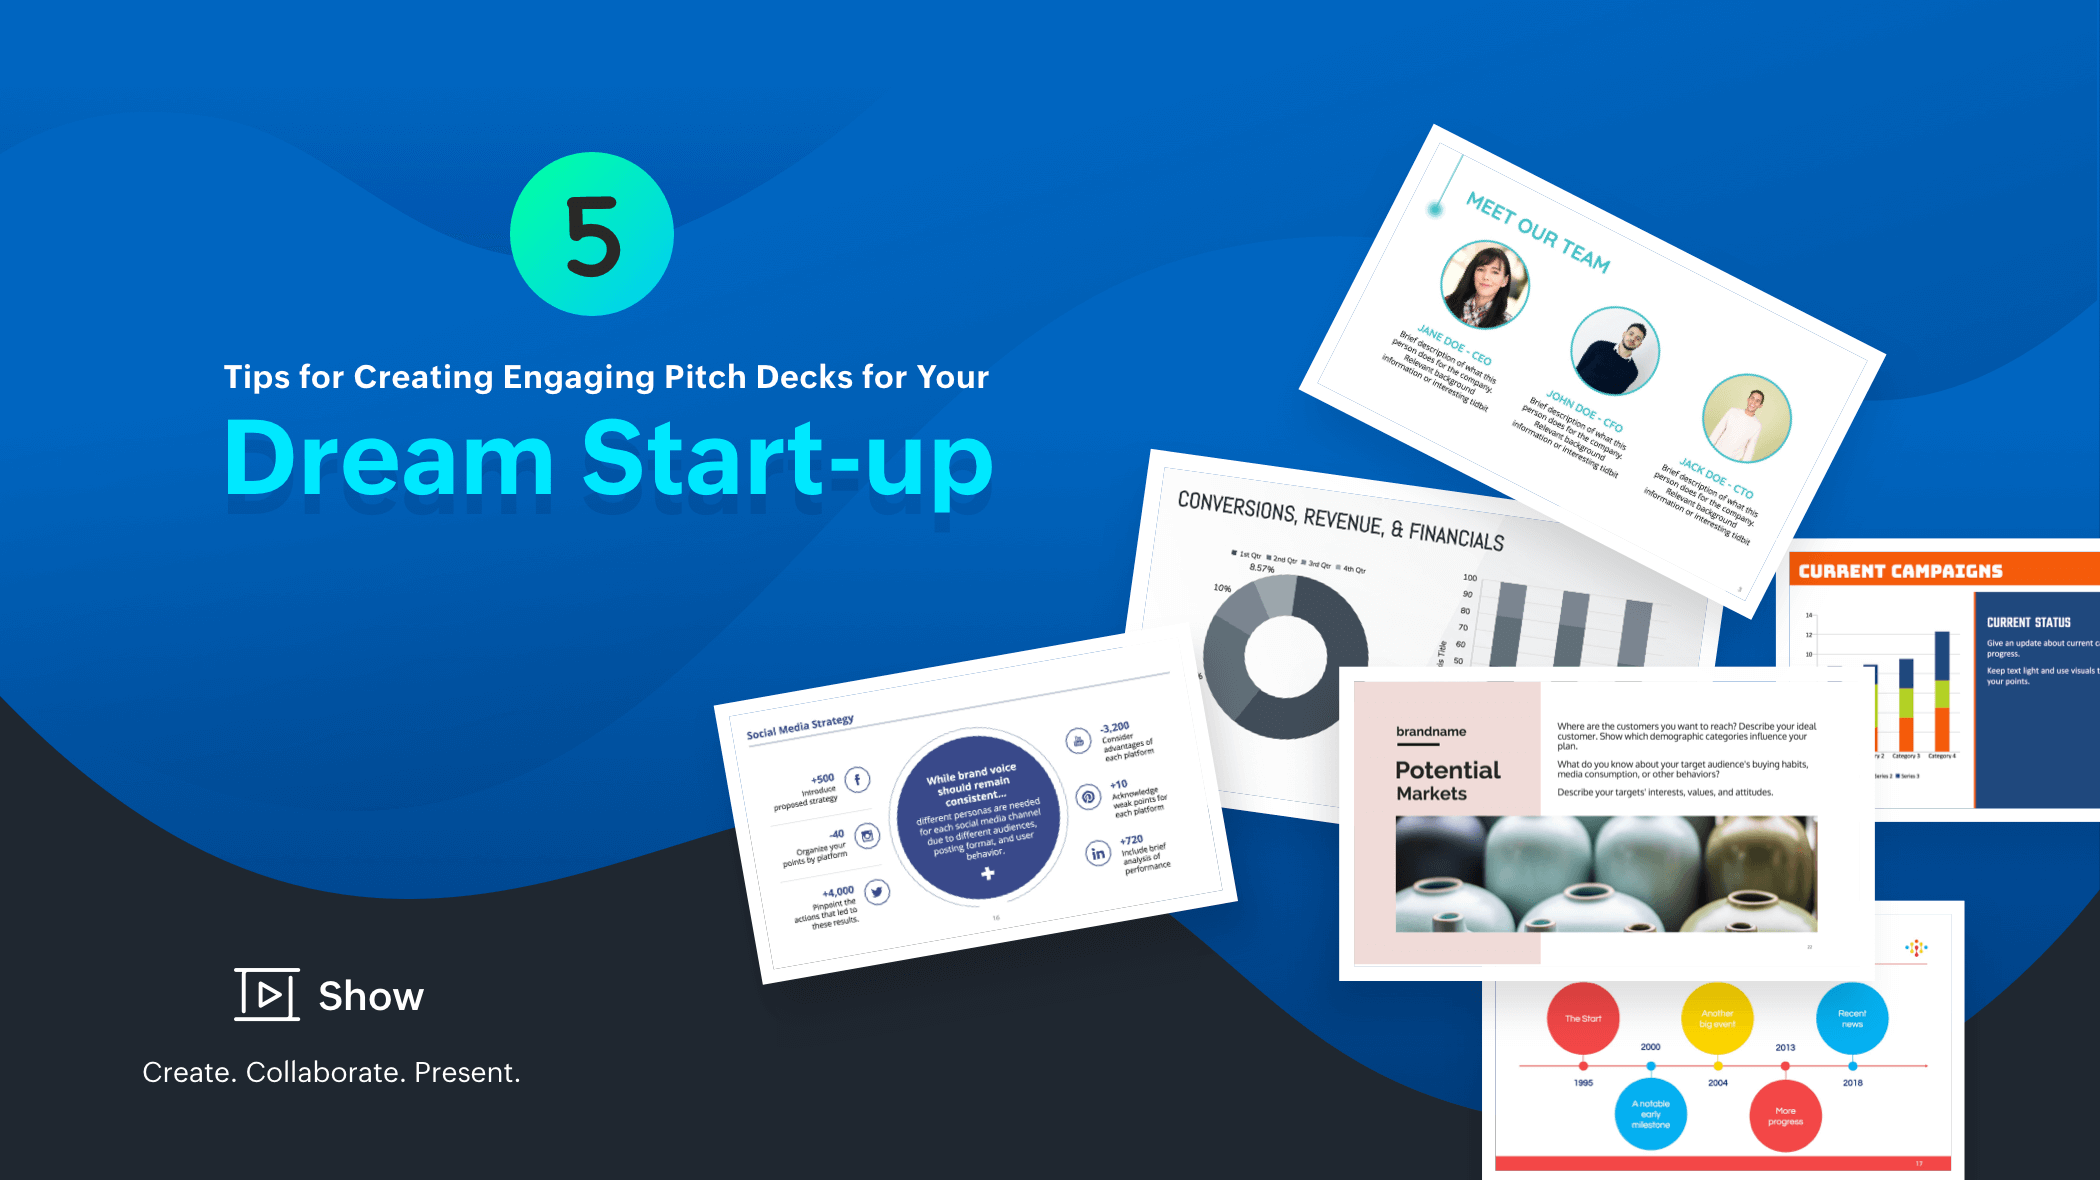 5 tips for creating engaging pitch decks for your dream start-up